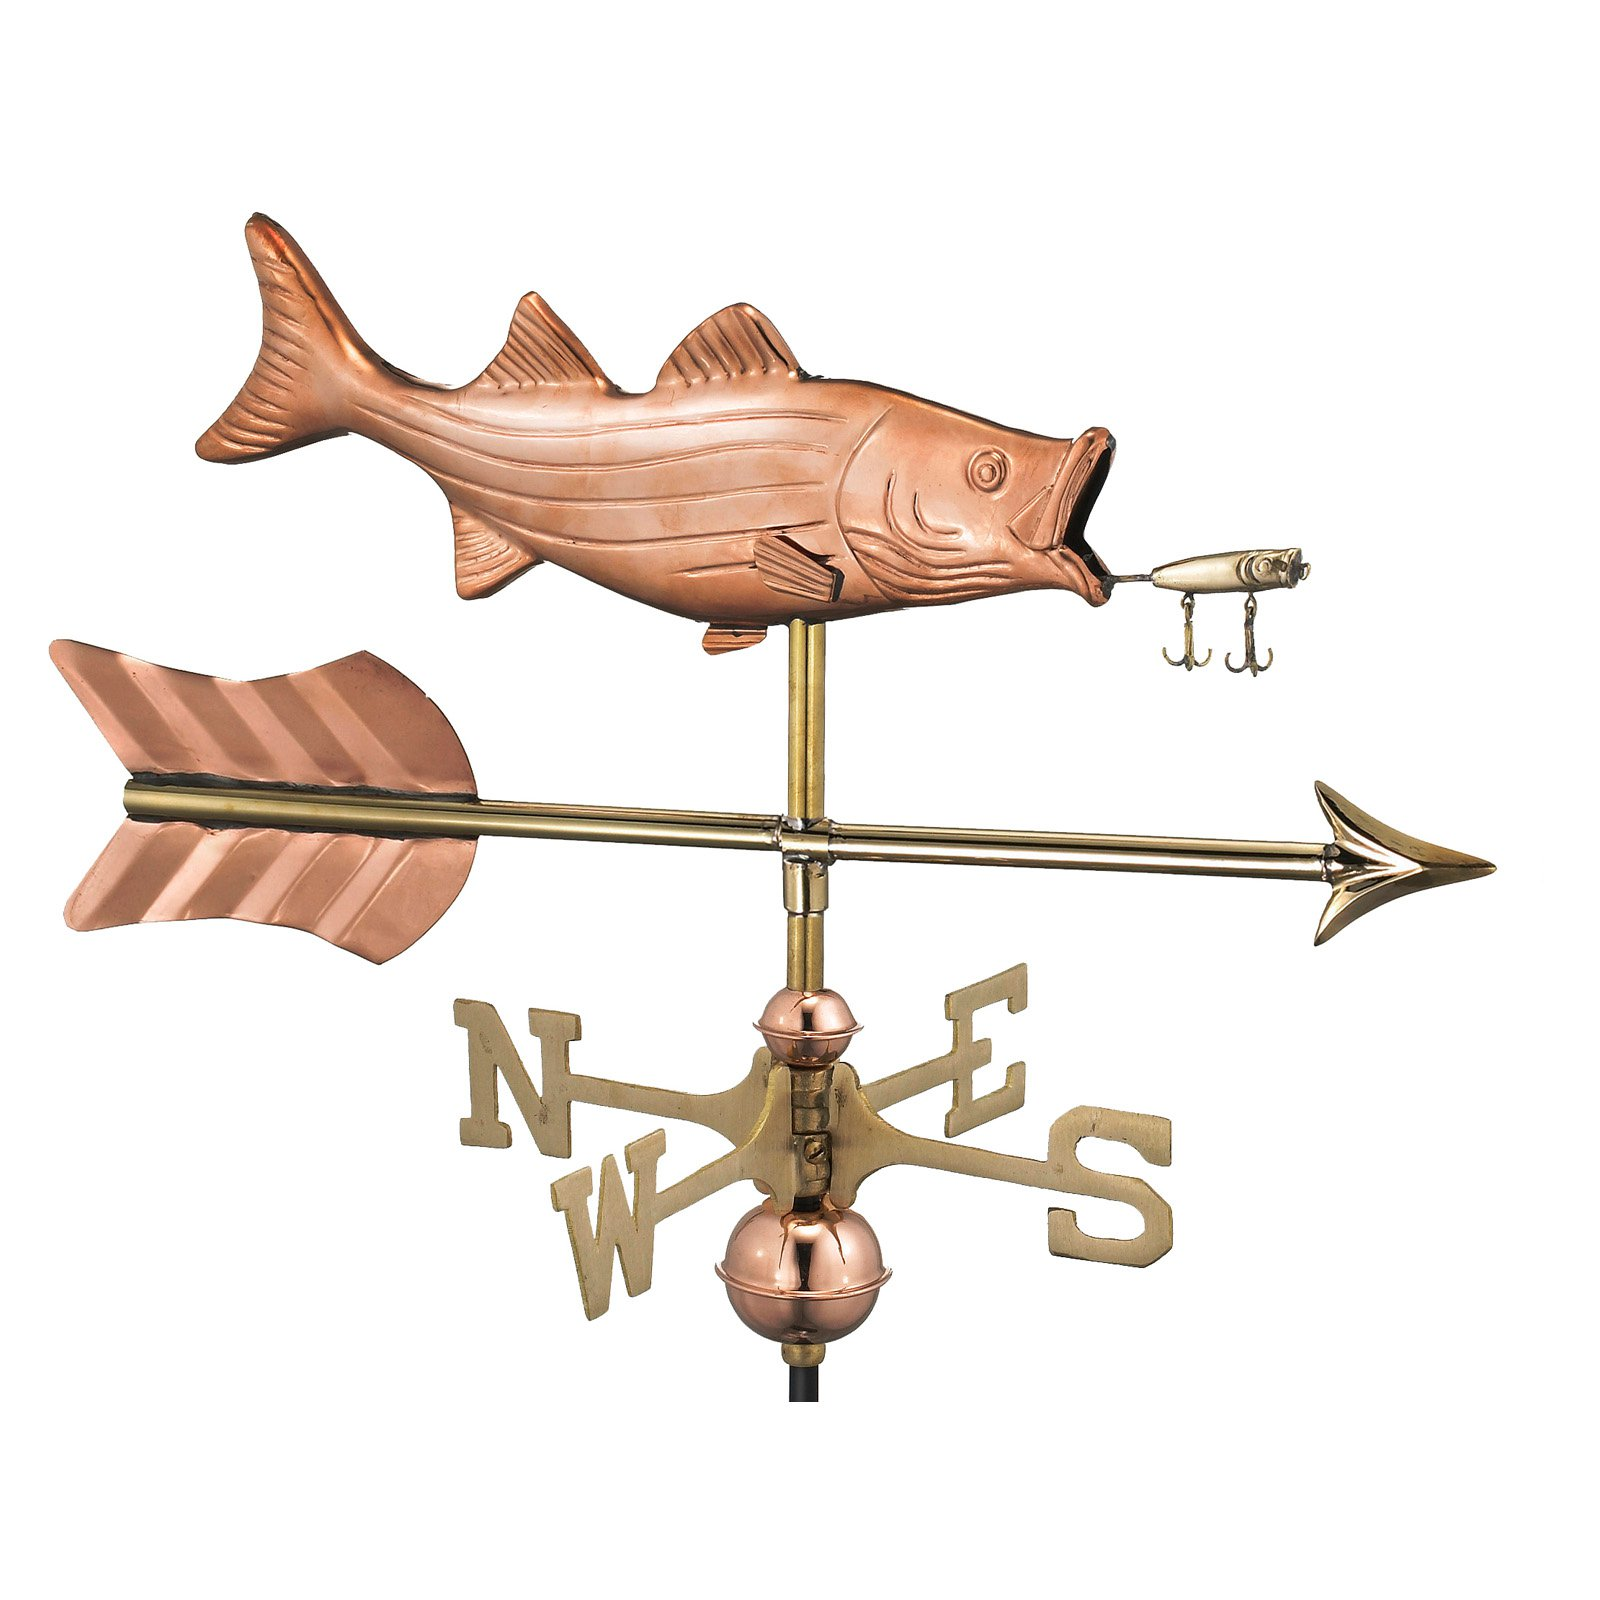 Good Directions Bass with Lure and Arrow Cottage Weathervane by Weathervanes